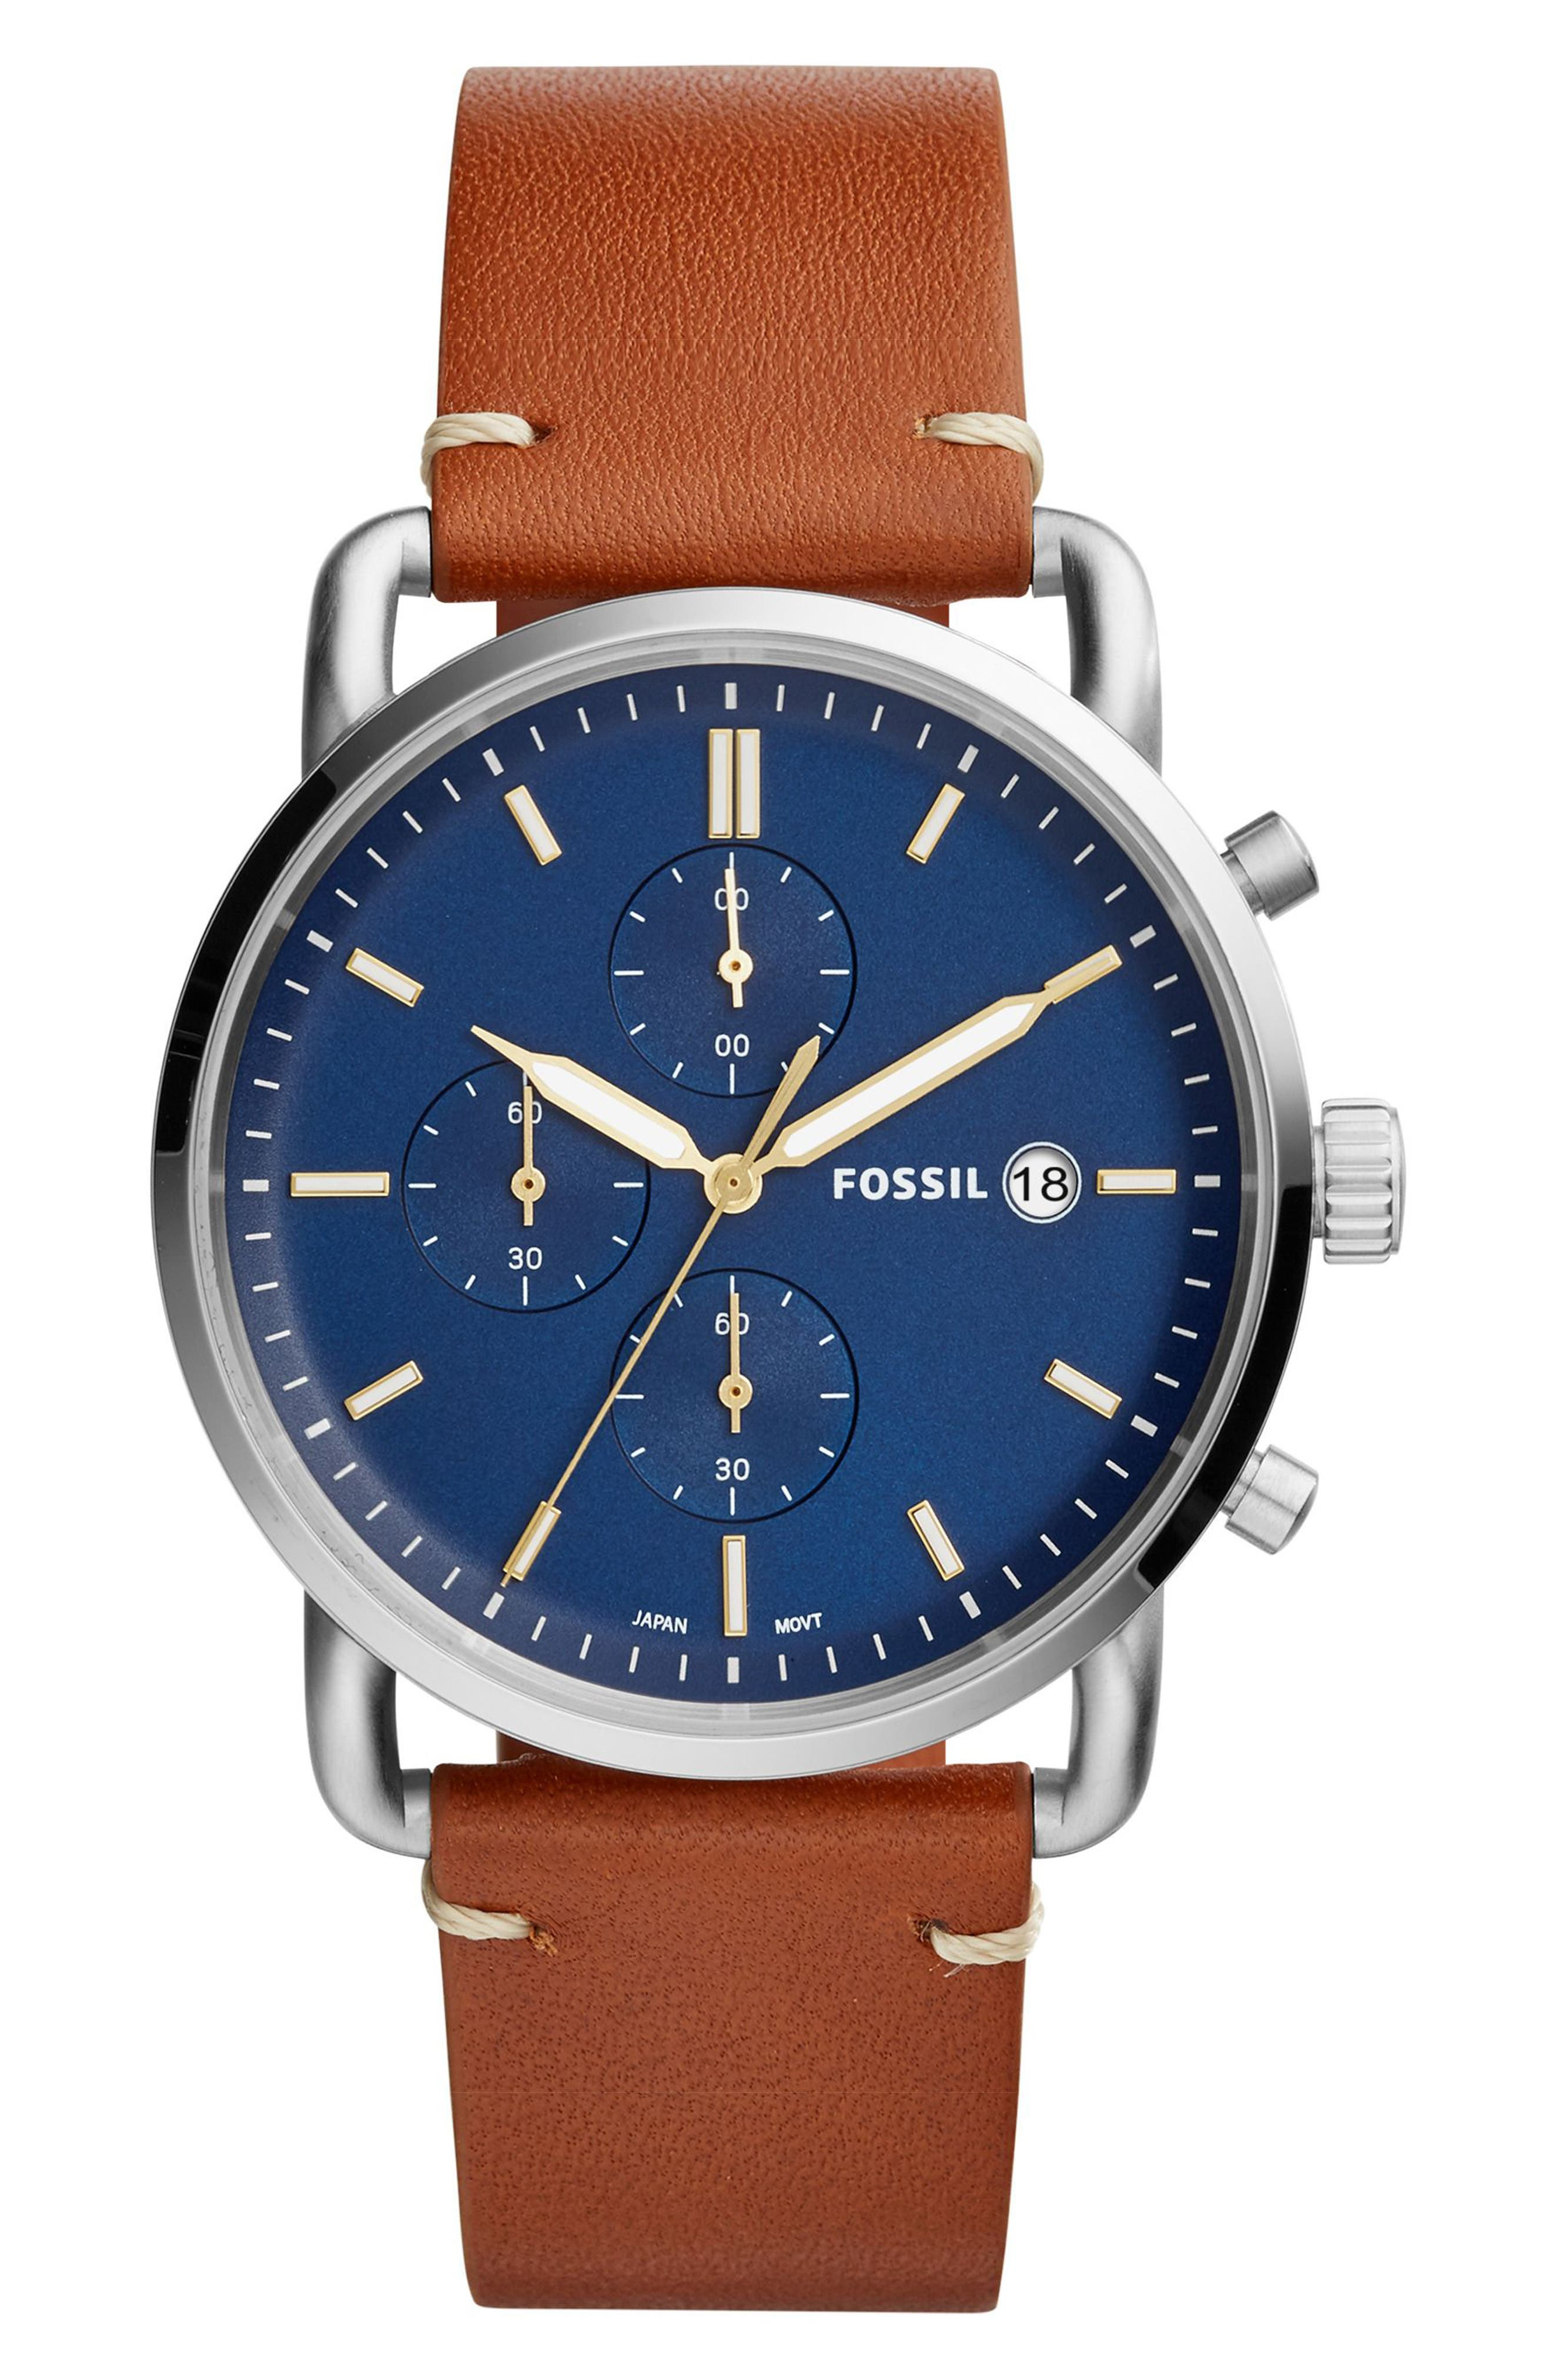 FOSSIL The Commuter Chronograph Leather Strap Watch, 42mm, Main, color, BROWN/ BLUE/ SILVER